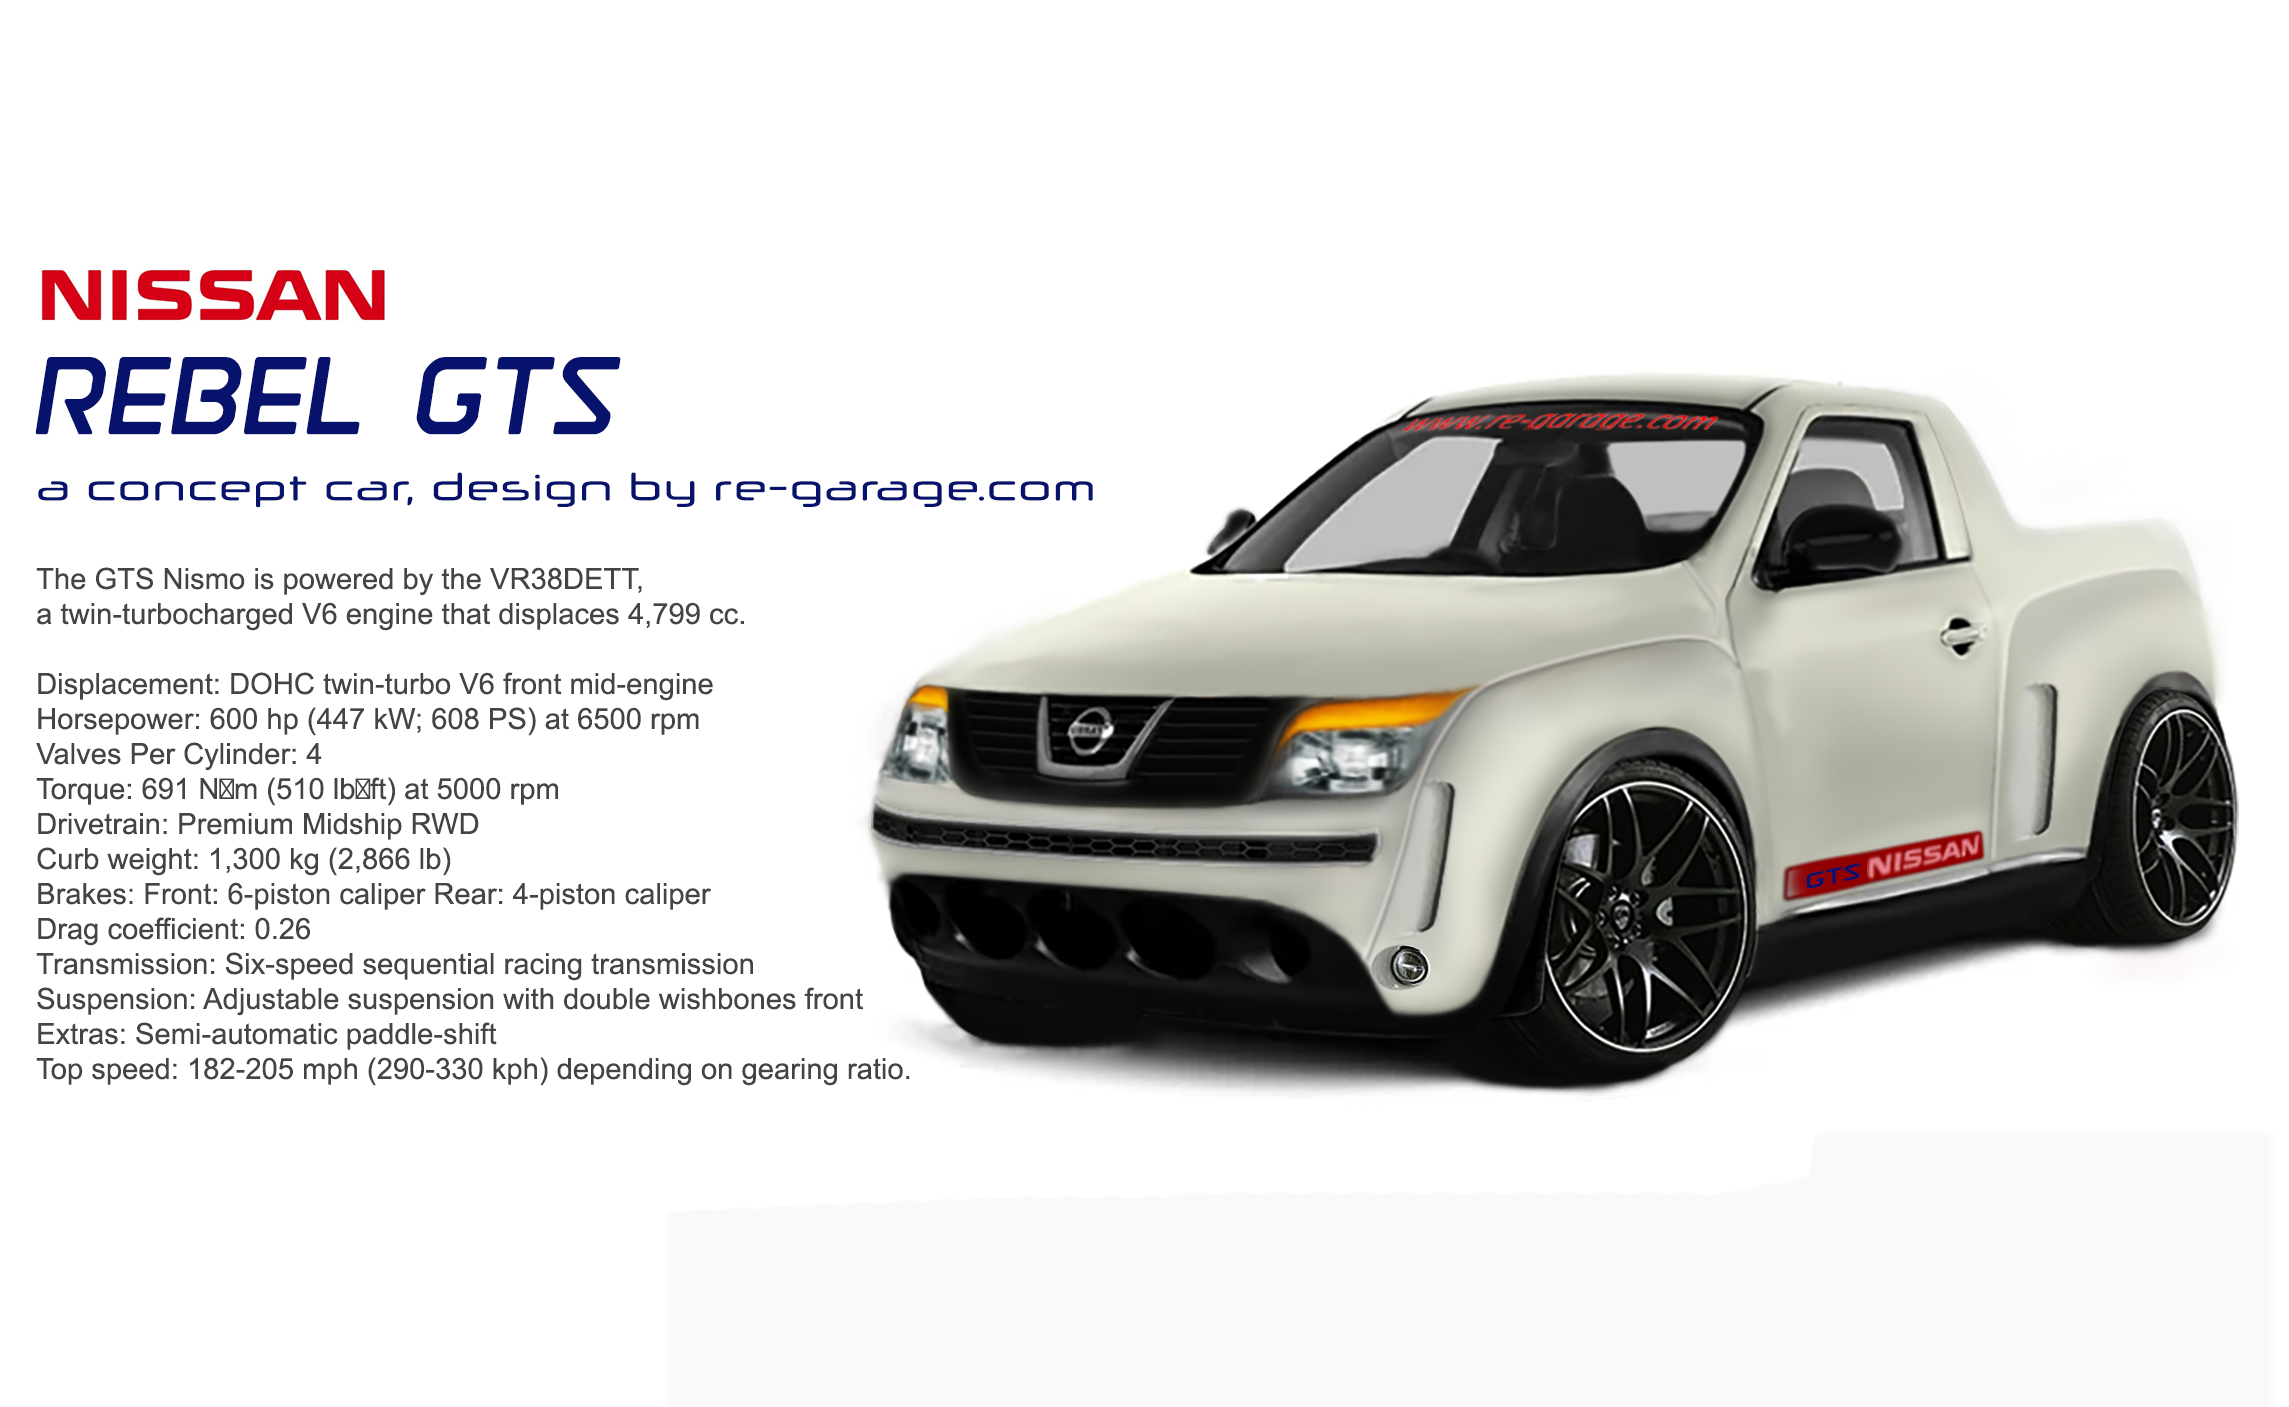 nissan rebel gts by re-garage-com